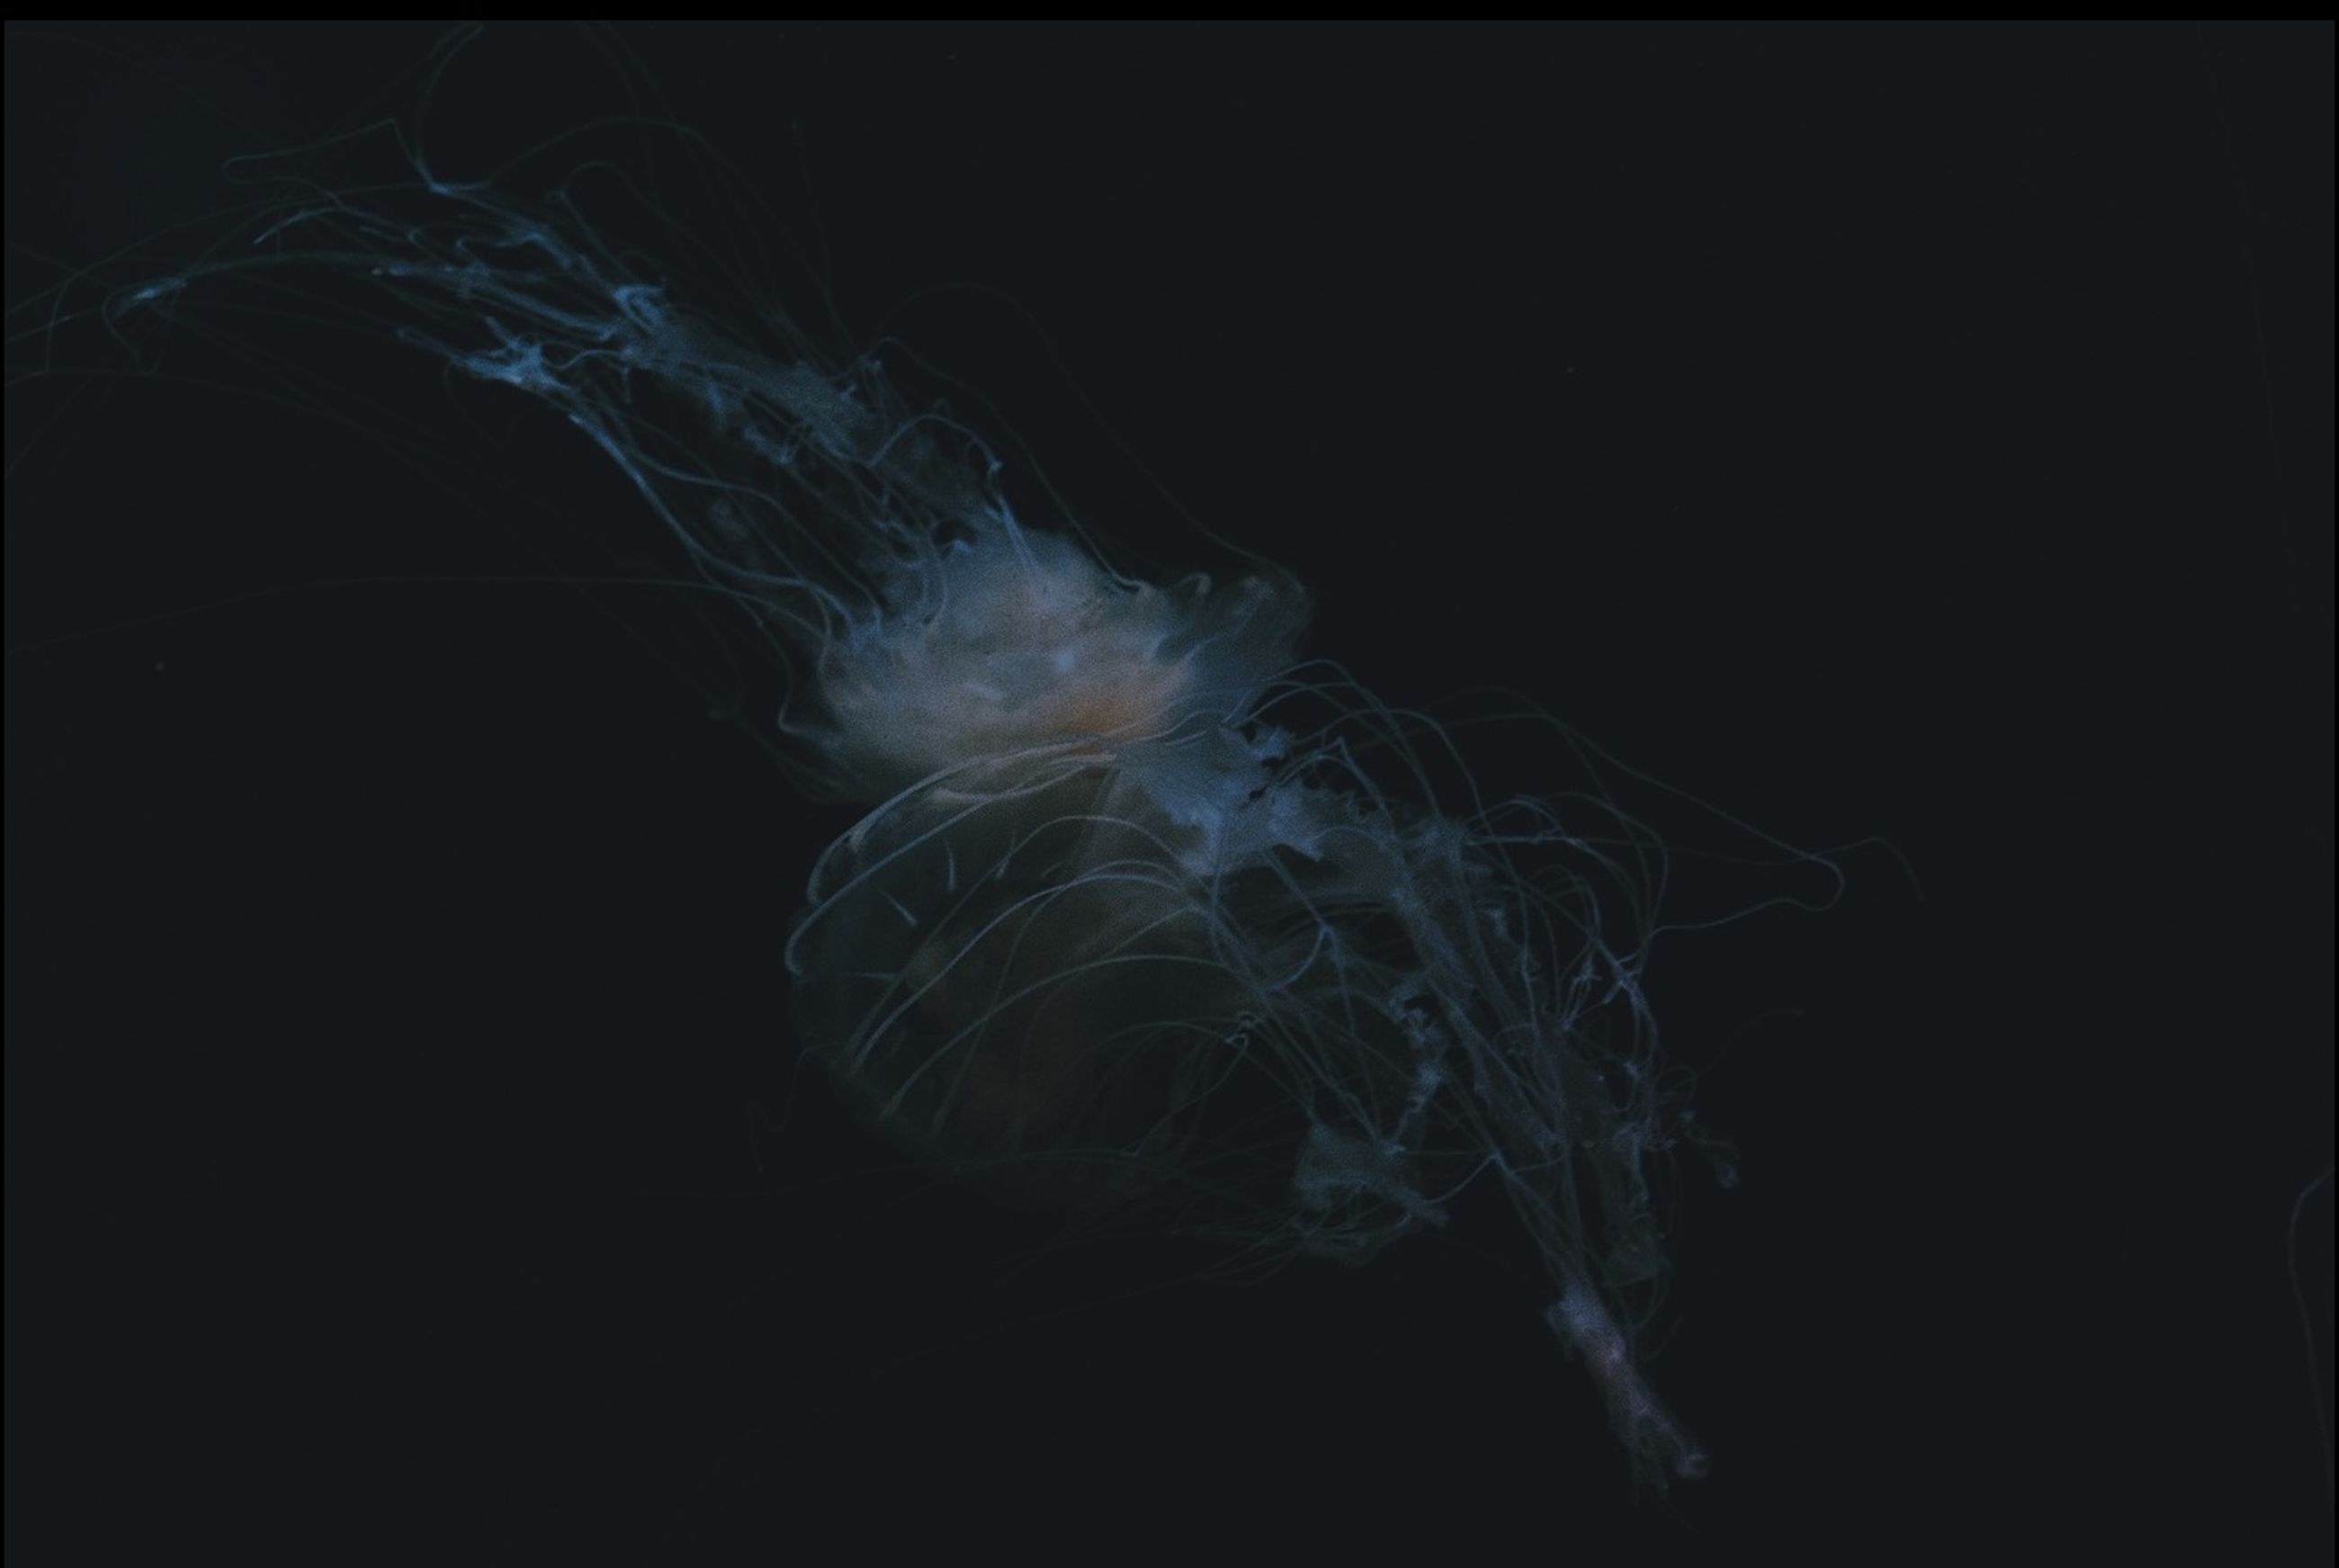 black background, studio shot, night, copy space, close-up, long exposure, motion, no people, nature, underwater, dark, glowing, beauty in nature, jellyfish, danger, abstract, blurred motion, outdoors, sea life, animal themes